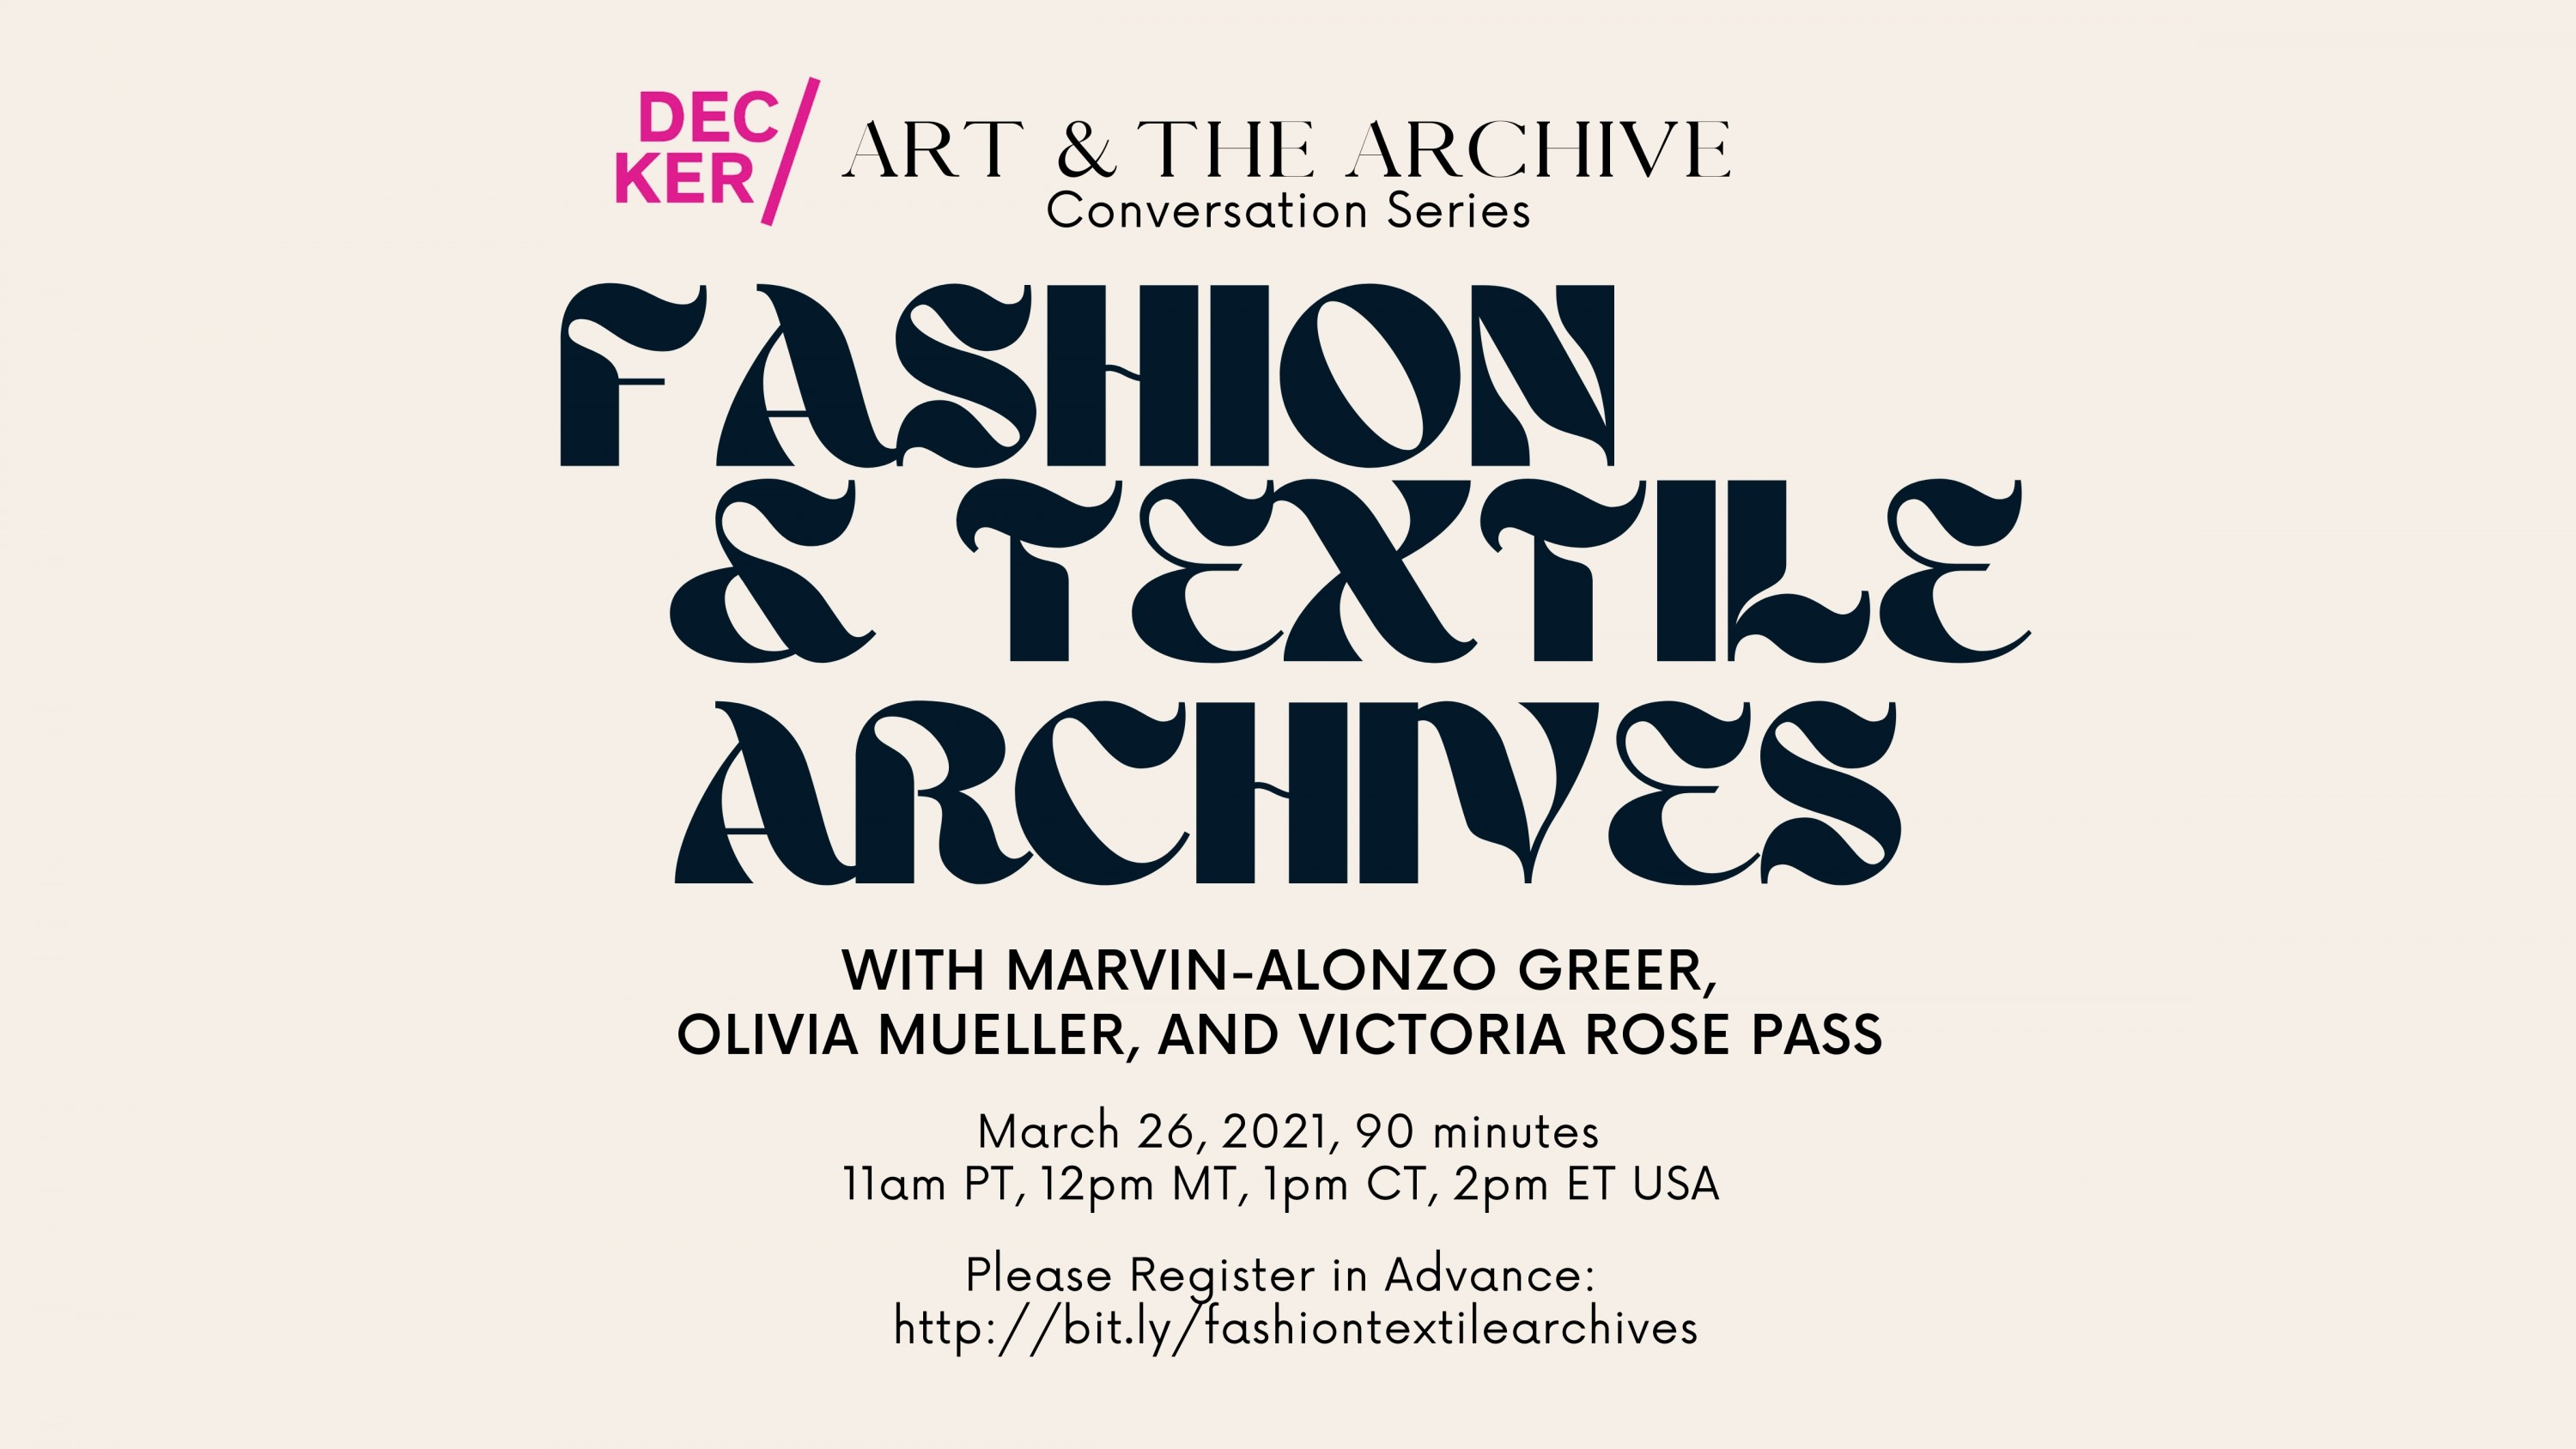 Flyer for Art & The Archive Conversation Series: Fashion & Textile Archives with Marvin-Alonzo Greer, Olivia Mueller, and Victoria Rose Pass. March 26, 2021, 90 minutes, 11am PT, 12pm MT, 1pm CT, 2pm ET USA. Please register in advance.